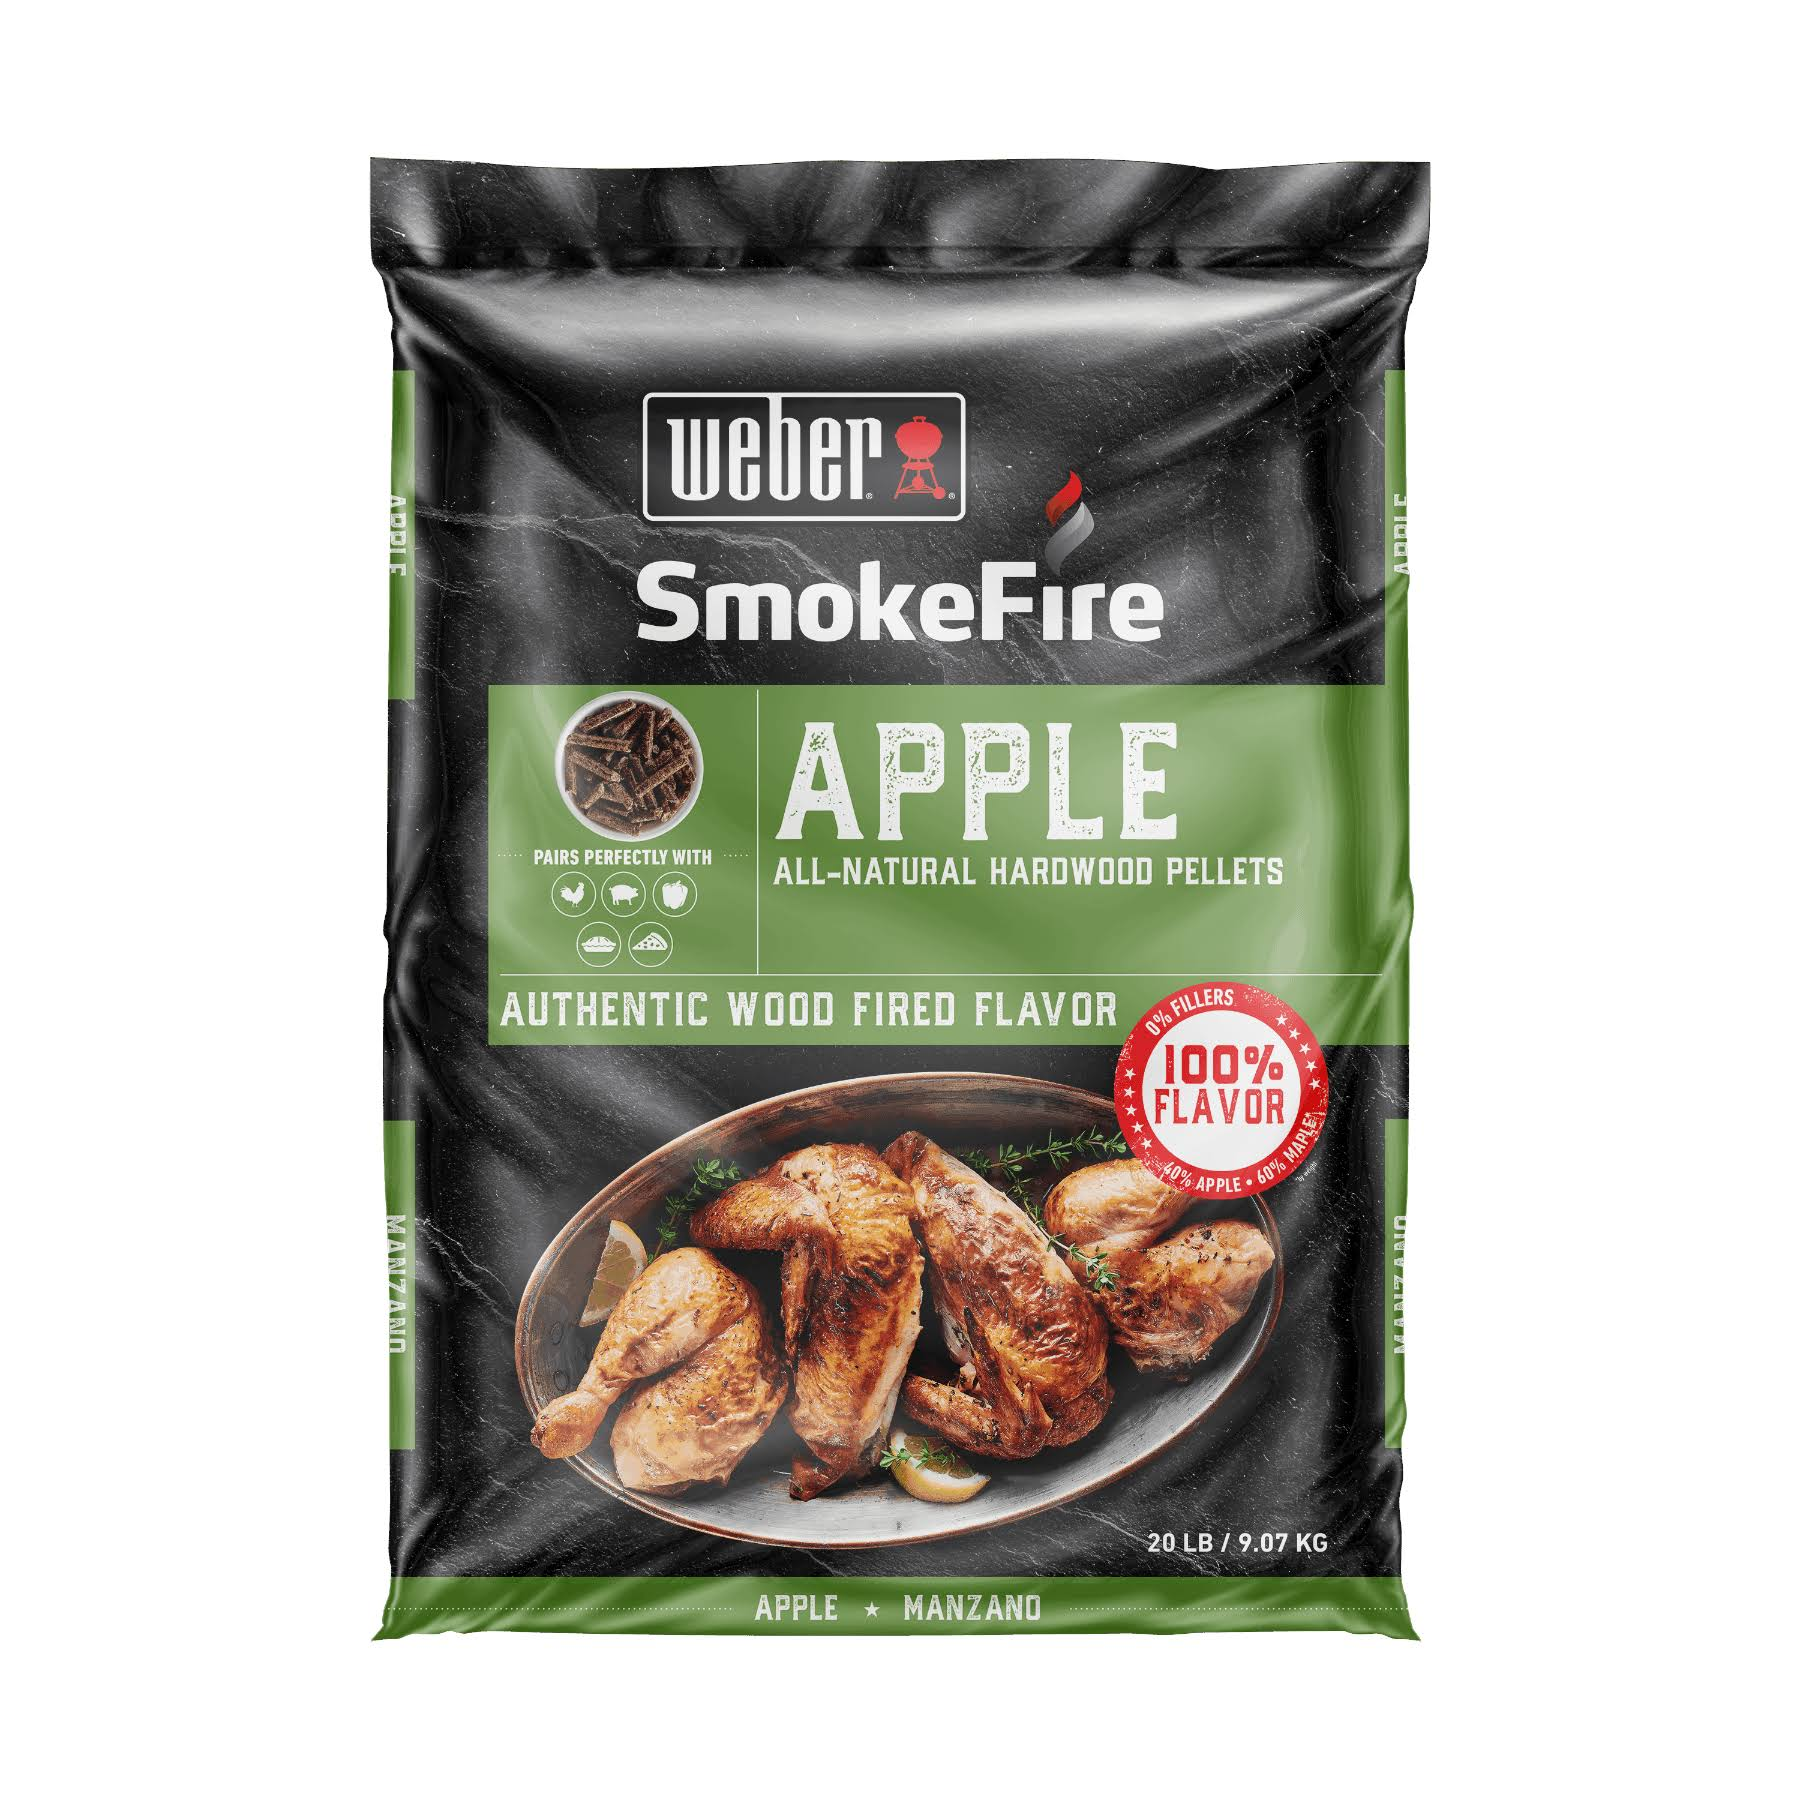 Weber 190004 SmokeFire Apple All-Natural Hardwood Pellets - 20 lbs